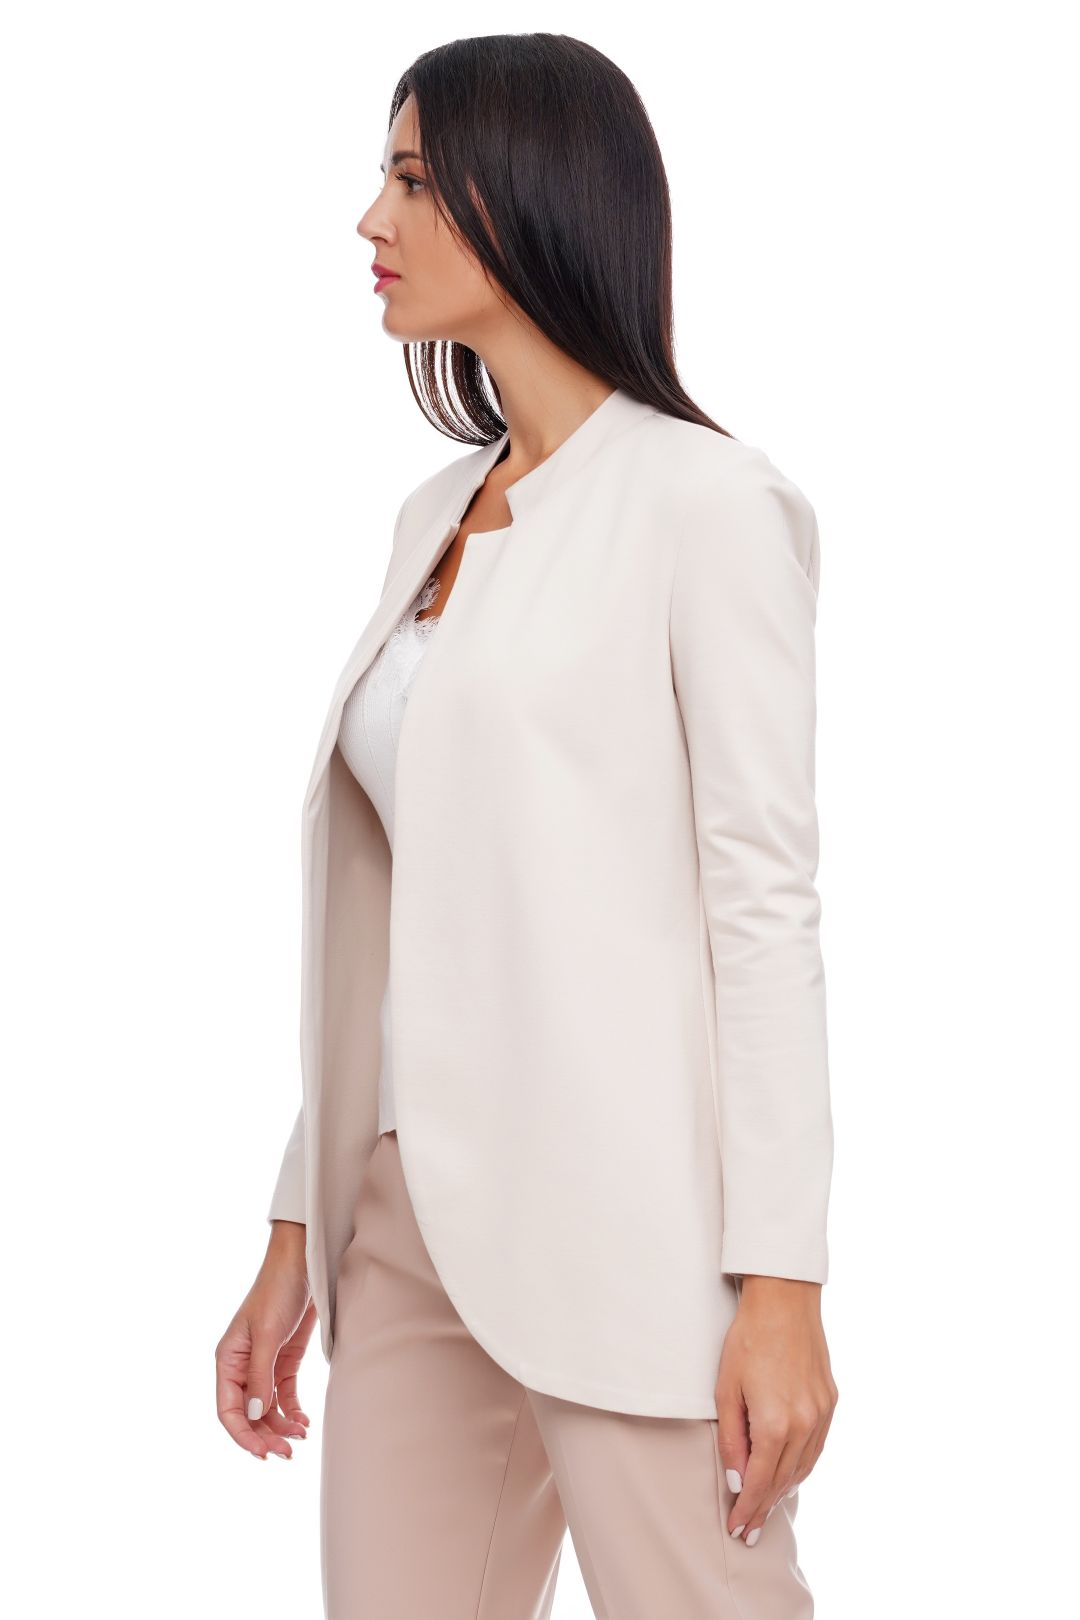 ANGELA DAVIS BLAZER LONG